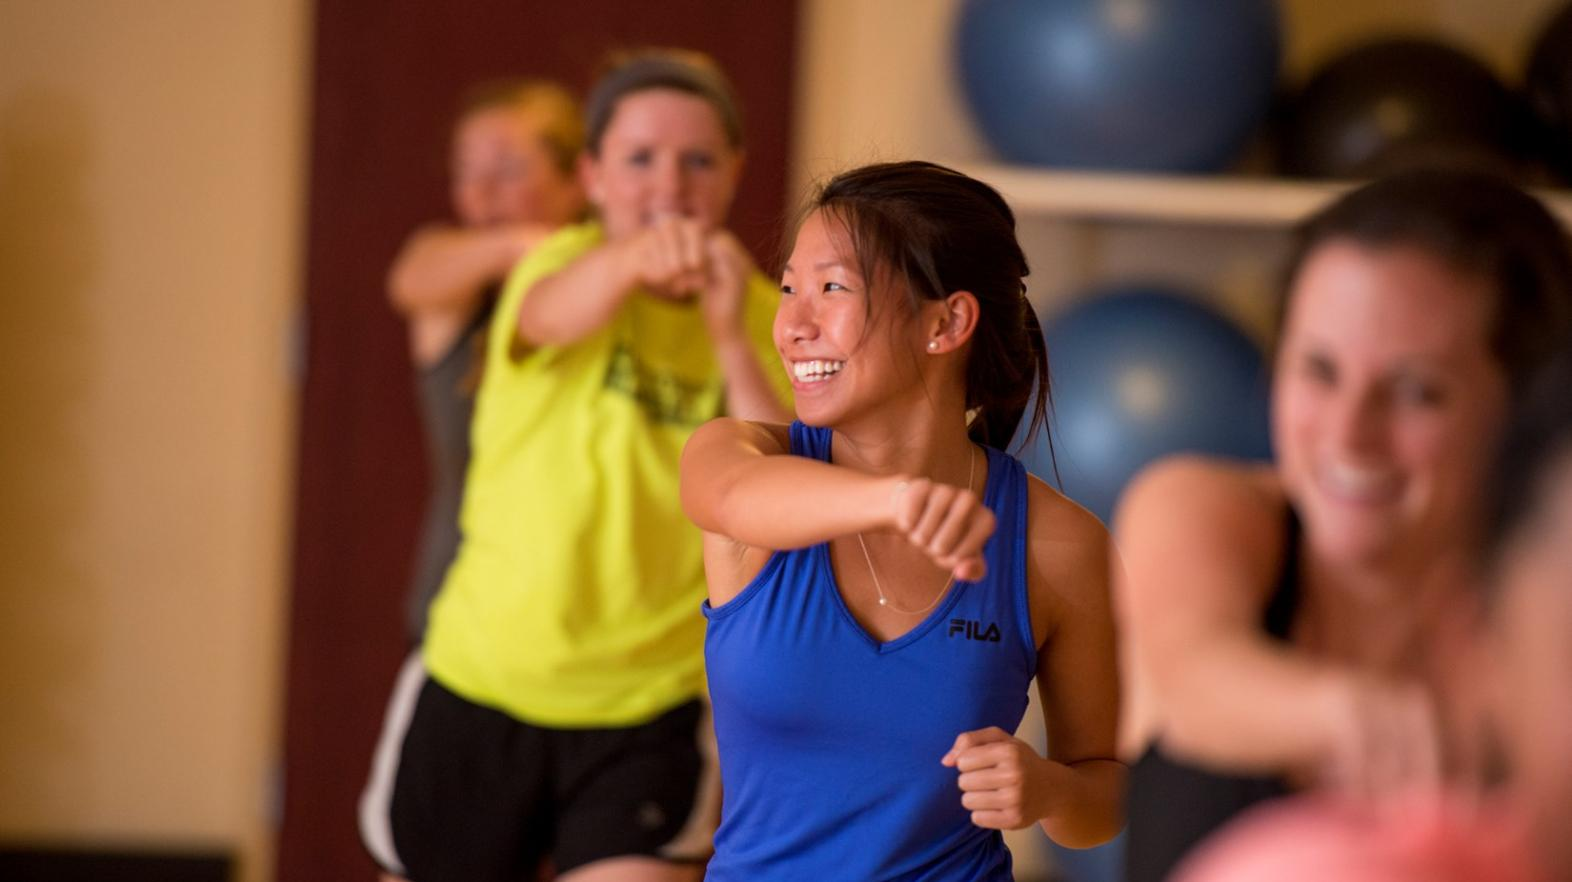 Female students smile as they work out in a group exercise class at Springfield College